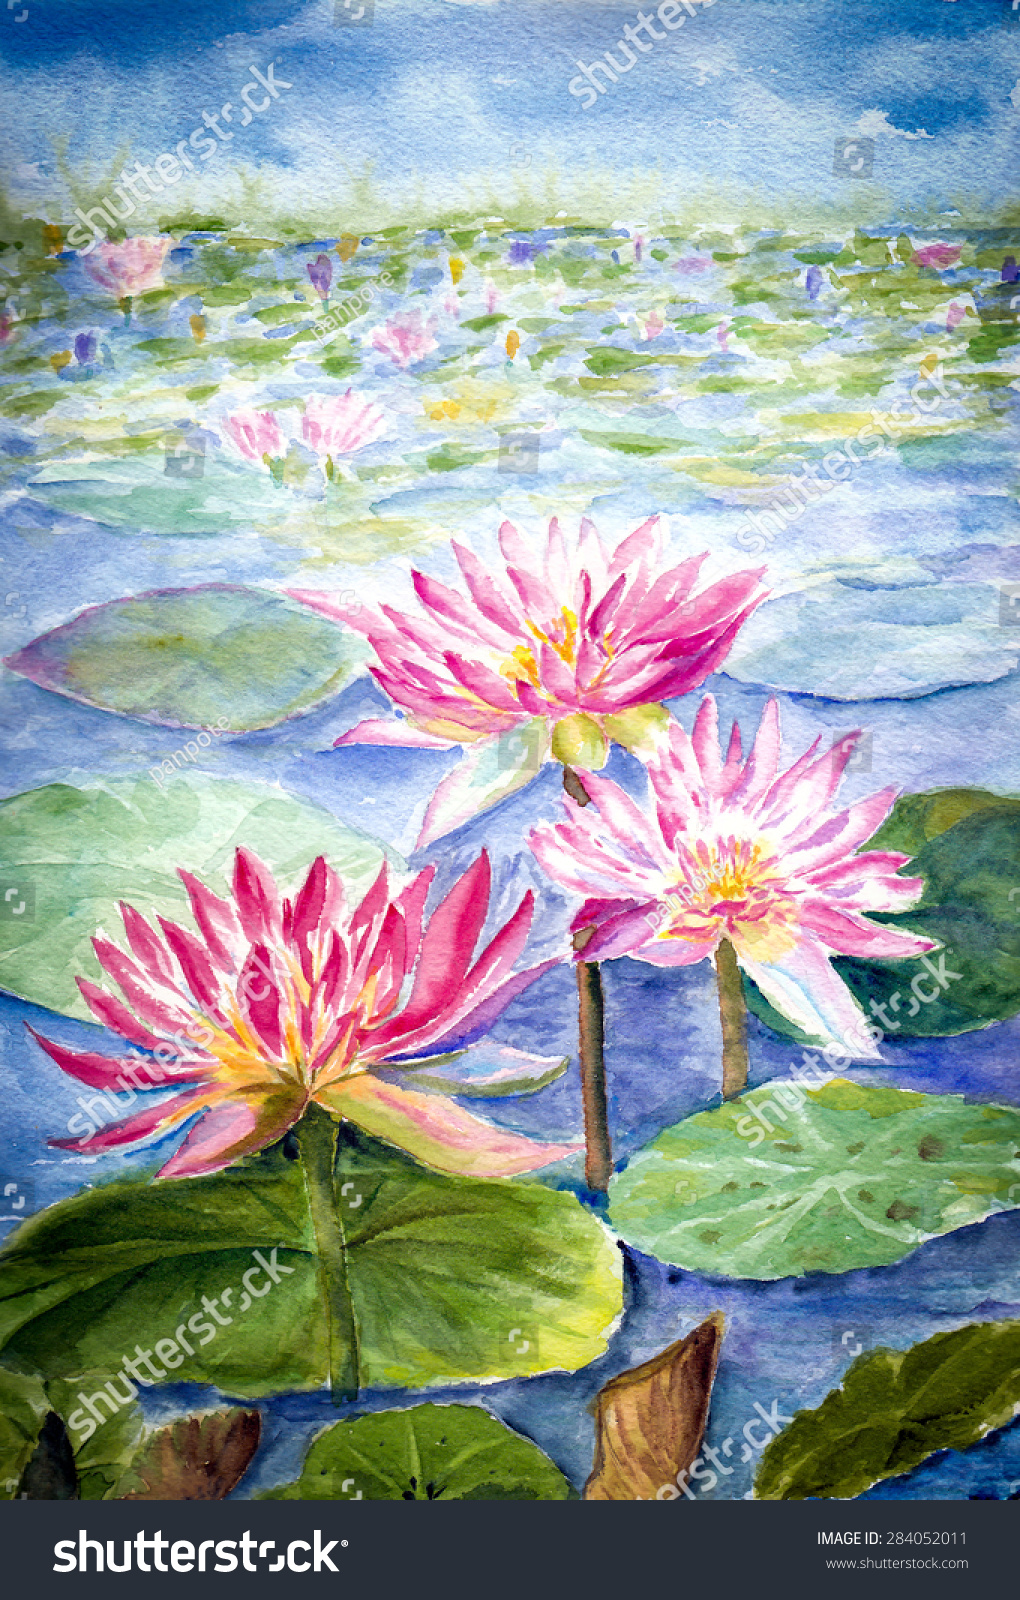 Water color painting lotus flower stock illustration 284052011 water color painting of lotus flower izmirmasajfo